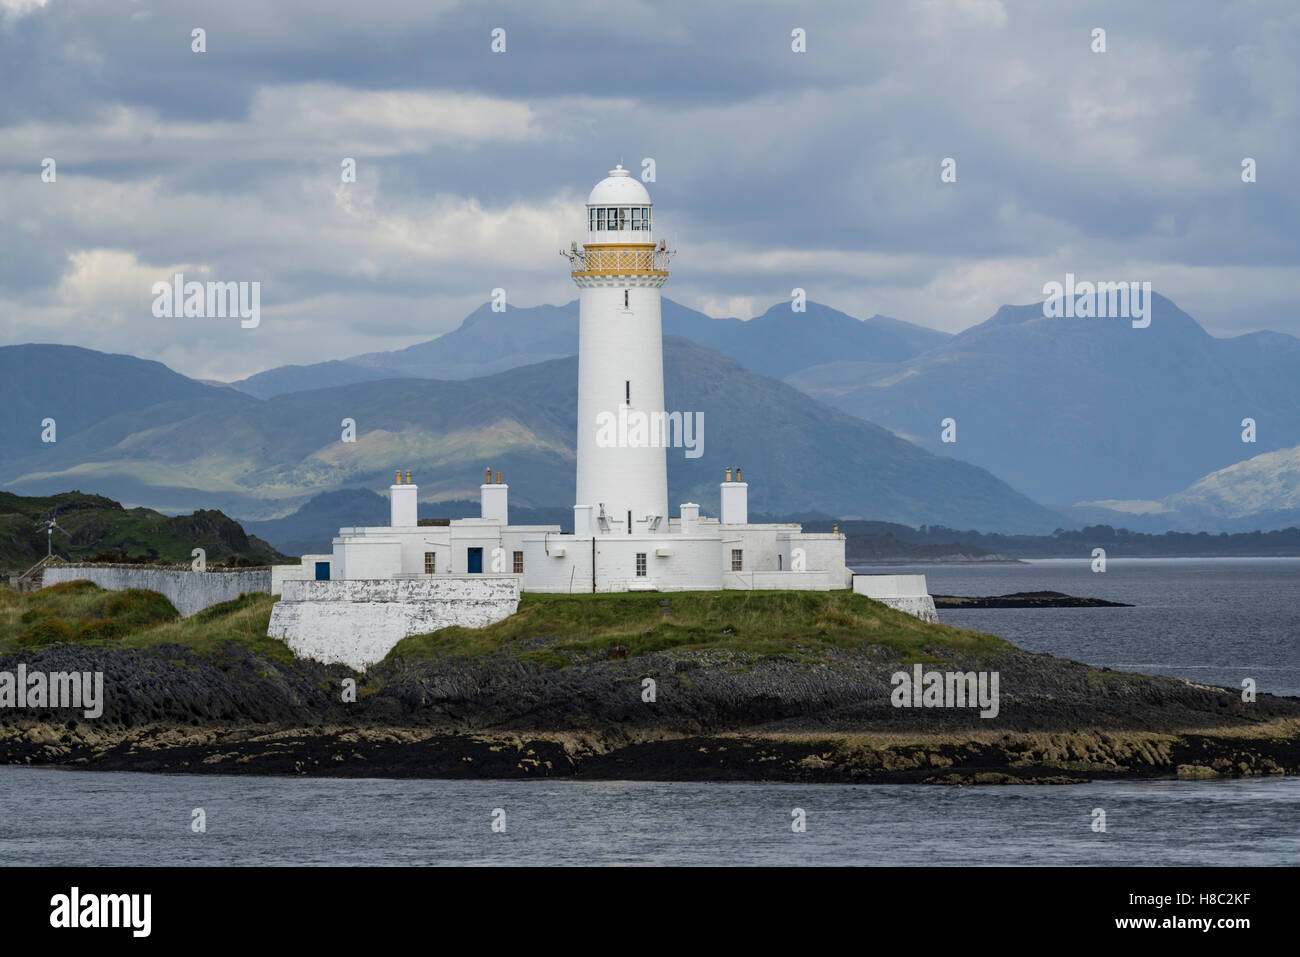 Oban-Mull ferry, Scotland - Craignure to Oban journey. Eilean Musdile lighthouse. - Stock Image